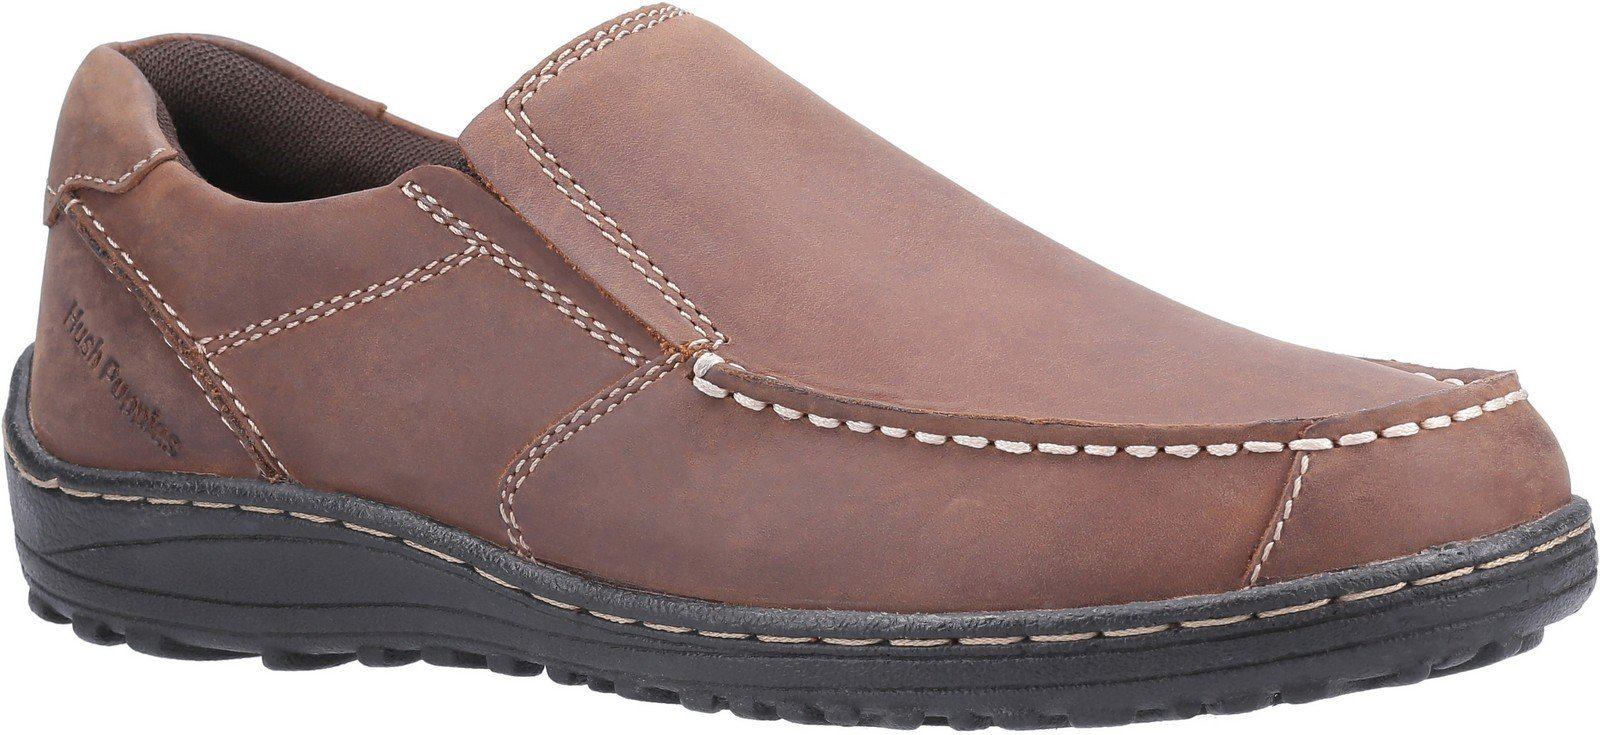 Hush Puppies Men's Thomas Slip on Loafer Various Colours 30213 - Brown 6